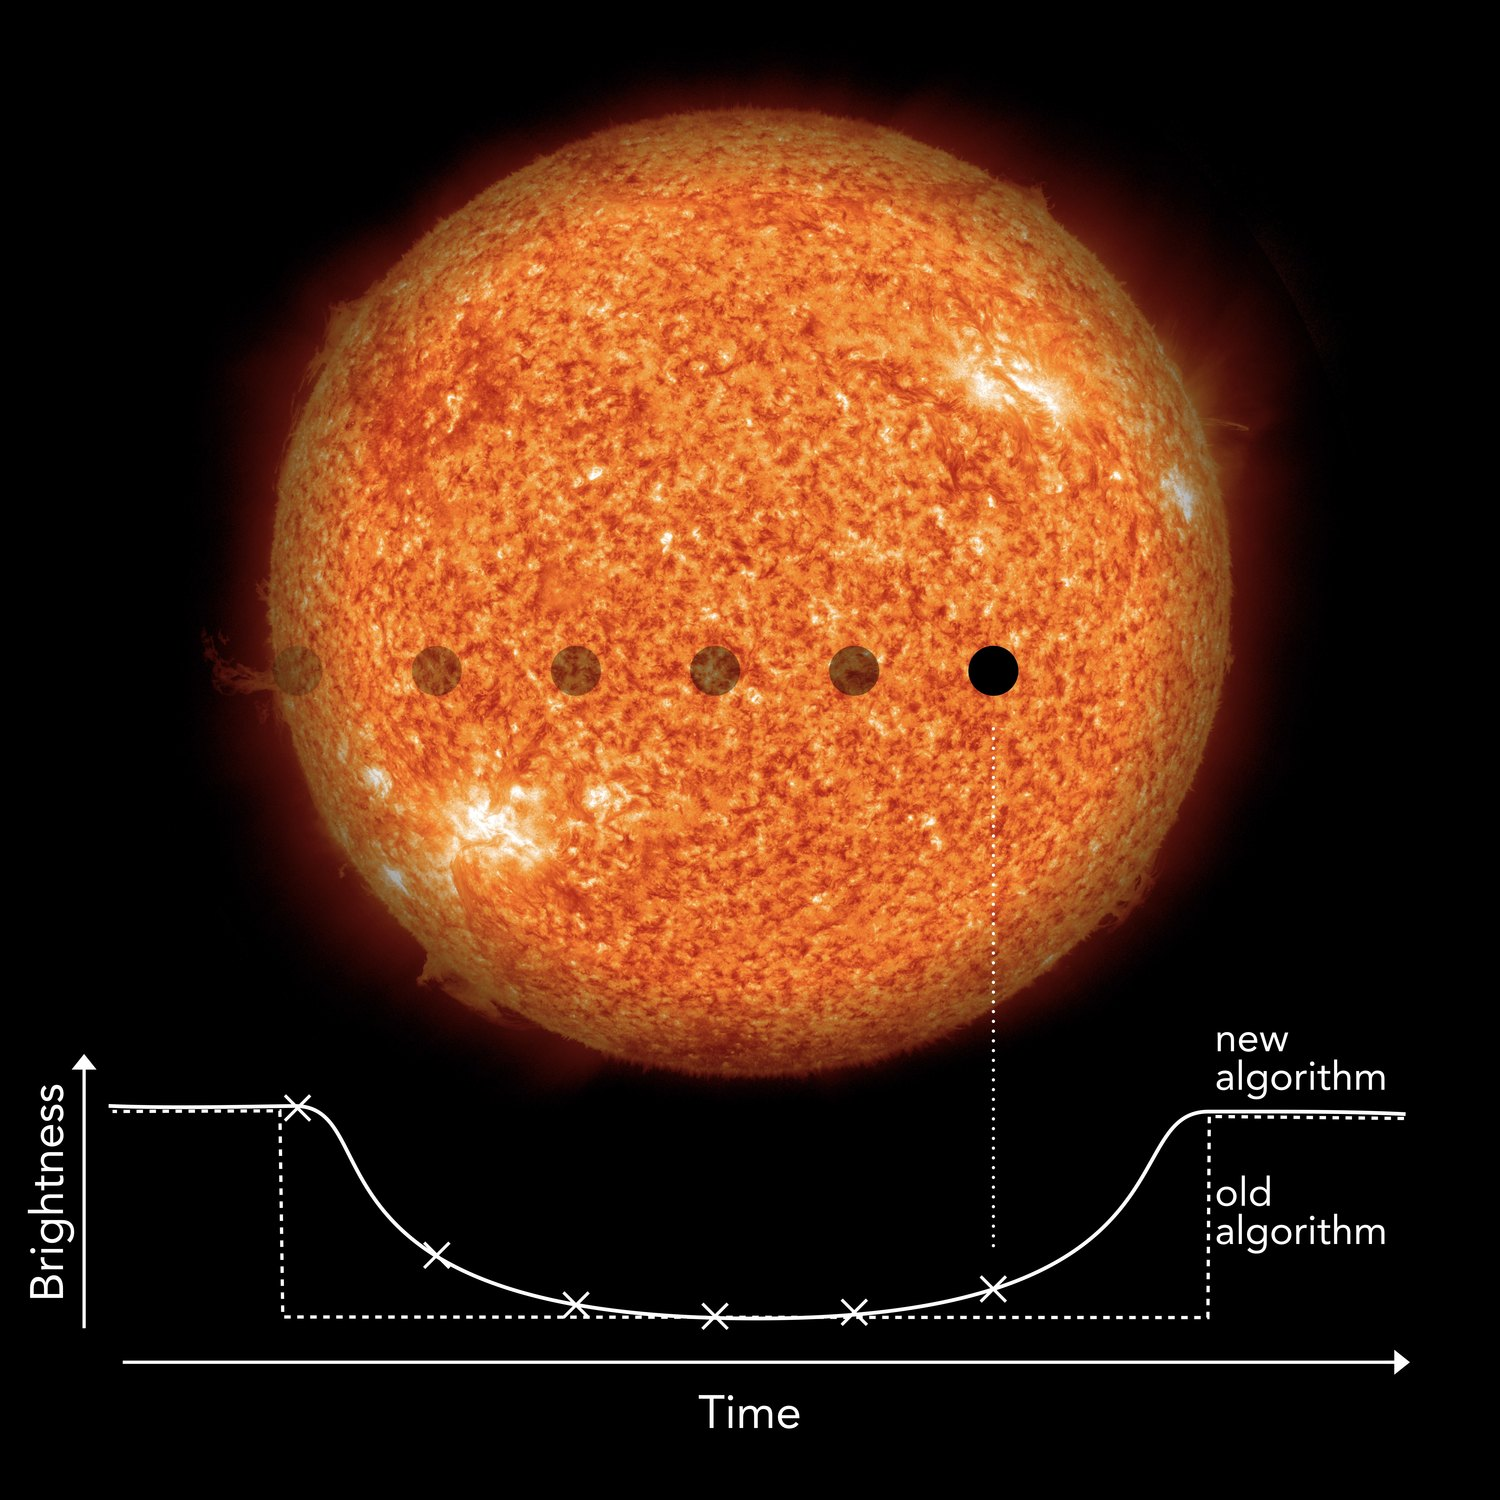 If the orbit of an extrasolar planet is aligned in such a way that it passes in front of its star when viewed from Earth, the planet blocks out a small fraction of the star light in a very characteristic way. This process, which typically lasts only a few hours, is called a transit. From the frequency of this periodic dimming event, astronomers directly measure the length of the year on the planet, and from the transit depth they estimate the size ratio between planet and star. The new algorithm from Heller, Rodenbeck, and Hippke does not search for abrupt drops in brightness like previous standard algorithms, but for the characteristic, gradual dimming and recovery. This makes the new transit search algorithm much more sensitive to small planets the size of the Earth.